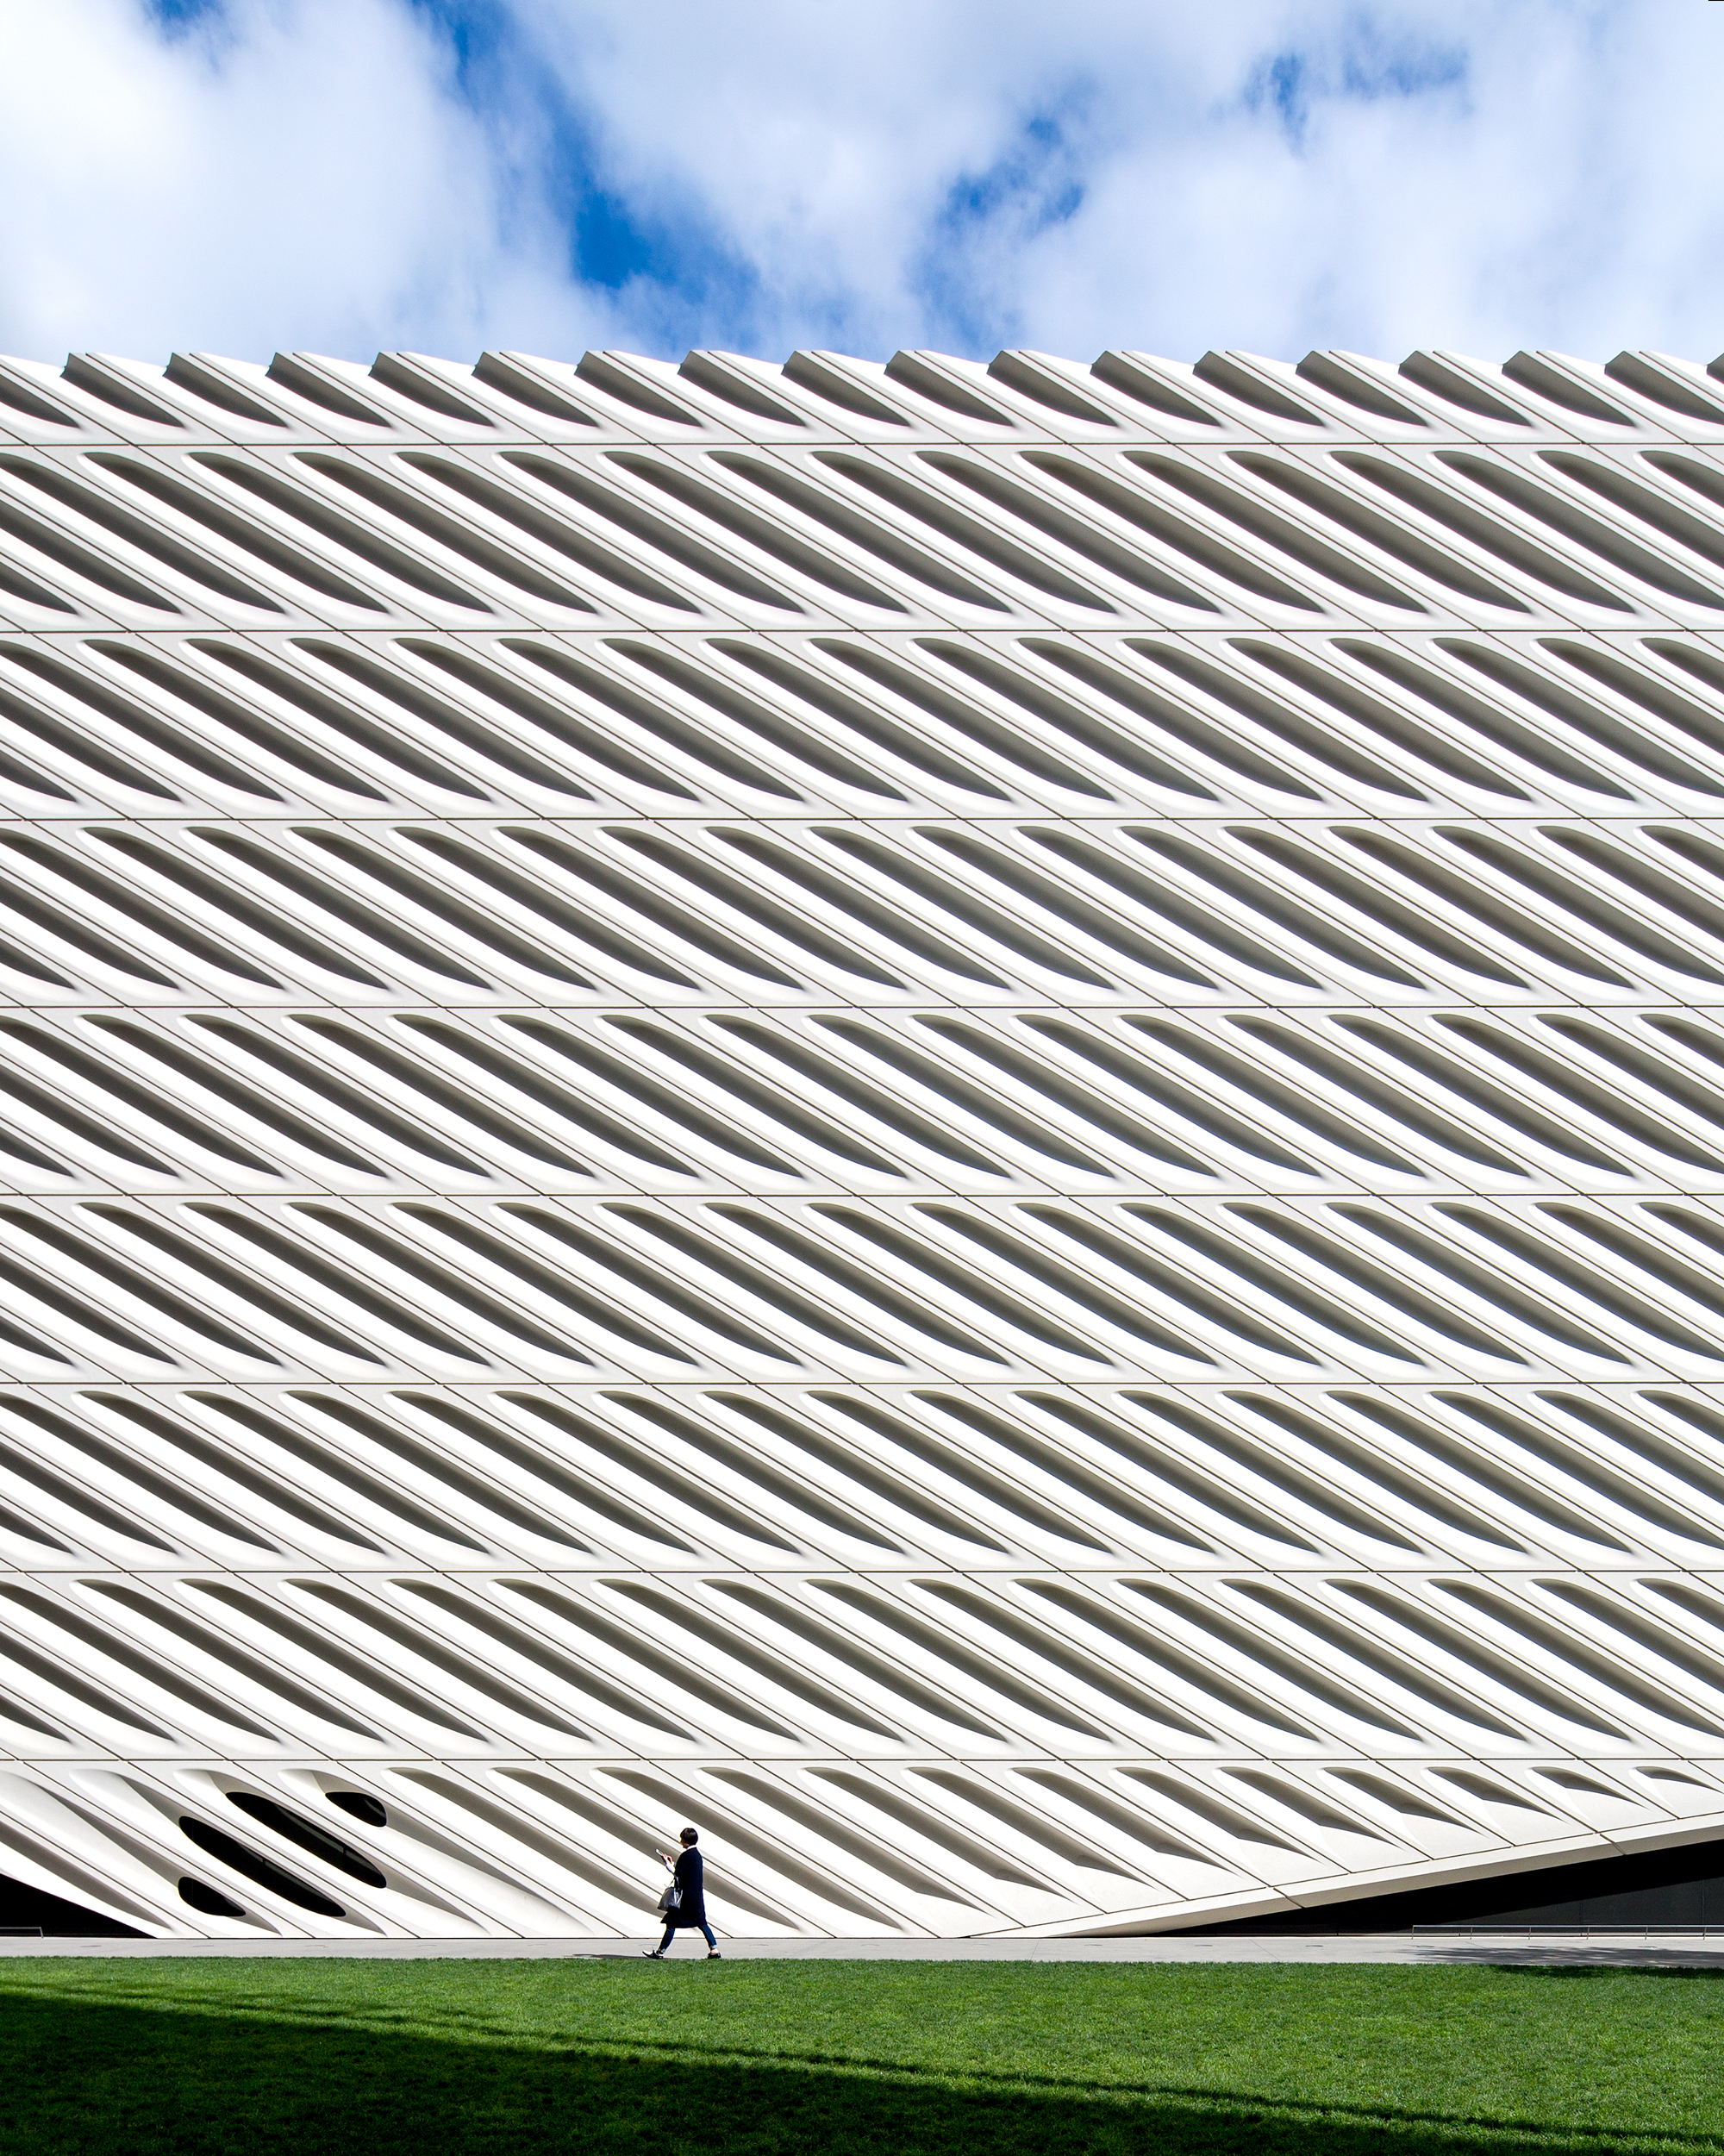 THE BROAD - diller scofidio + renfro